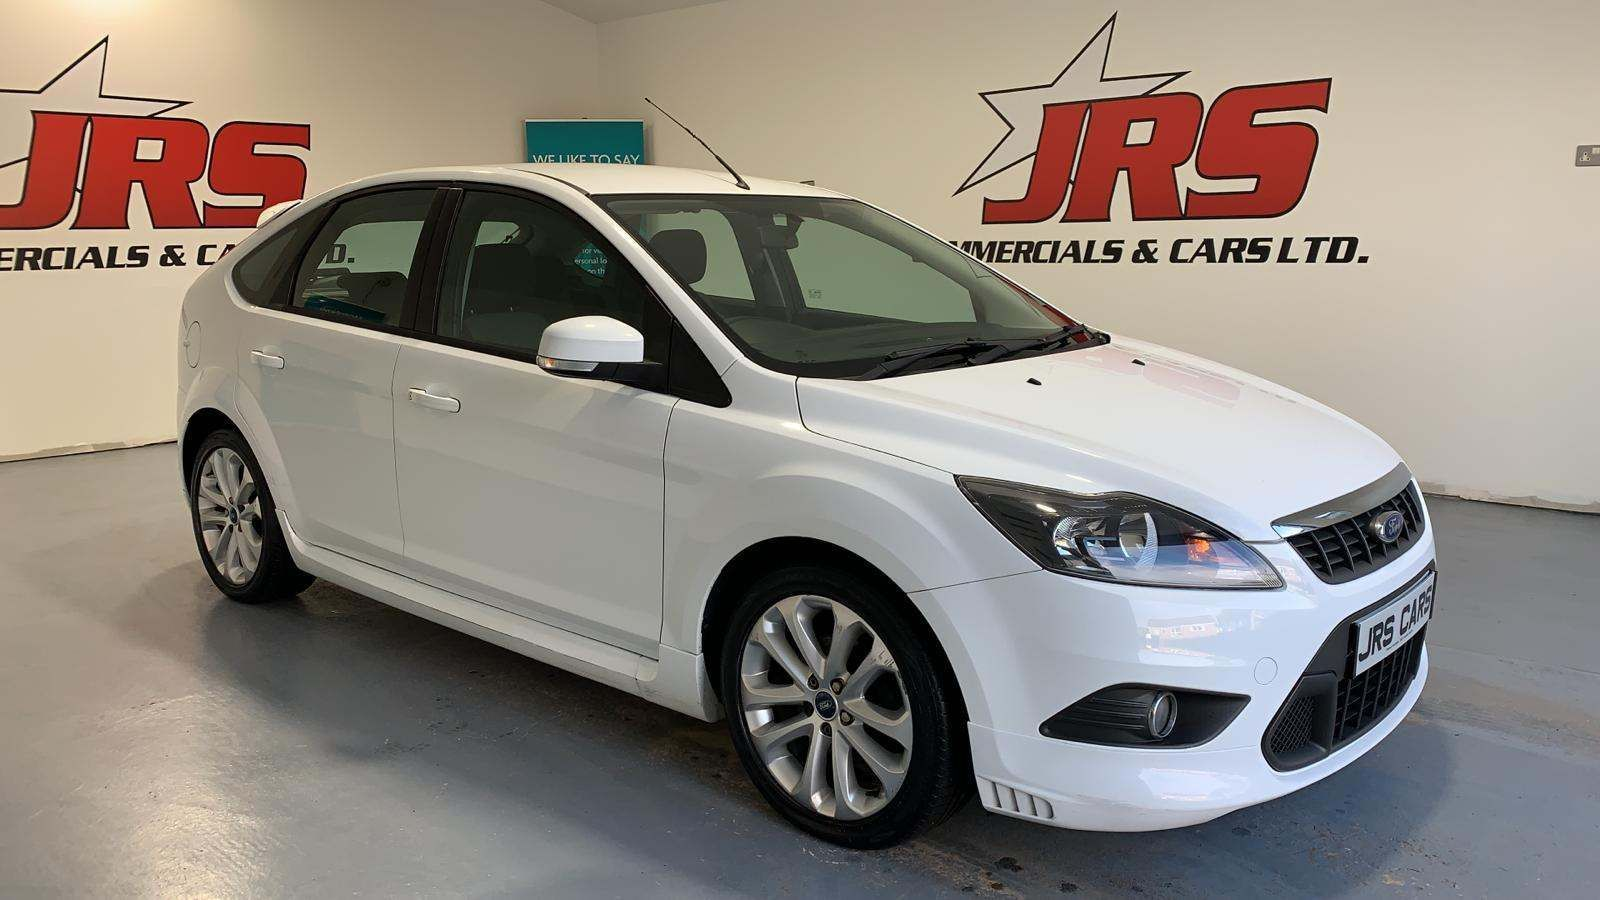 2010 FORD Focus 1.6 TDCi DPF Zetec S Diesel Manual **£30 Road Tax** – J R S Commercials And Cars Dungannon